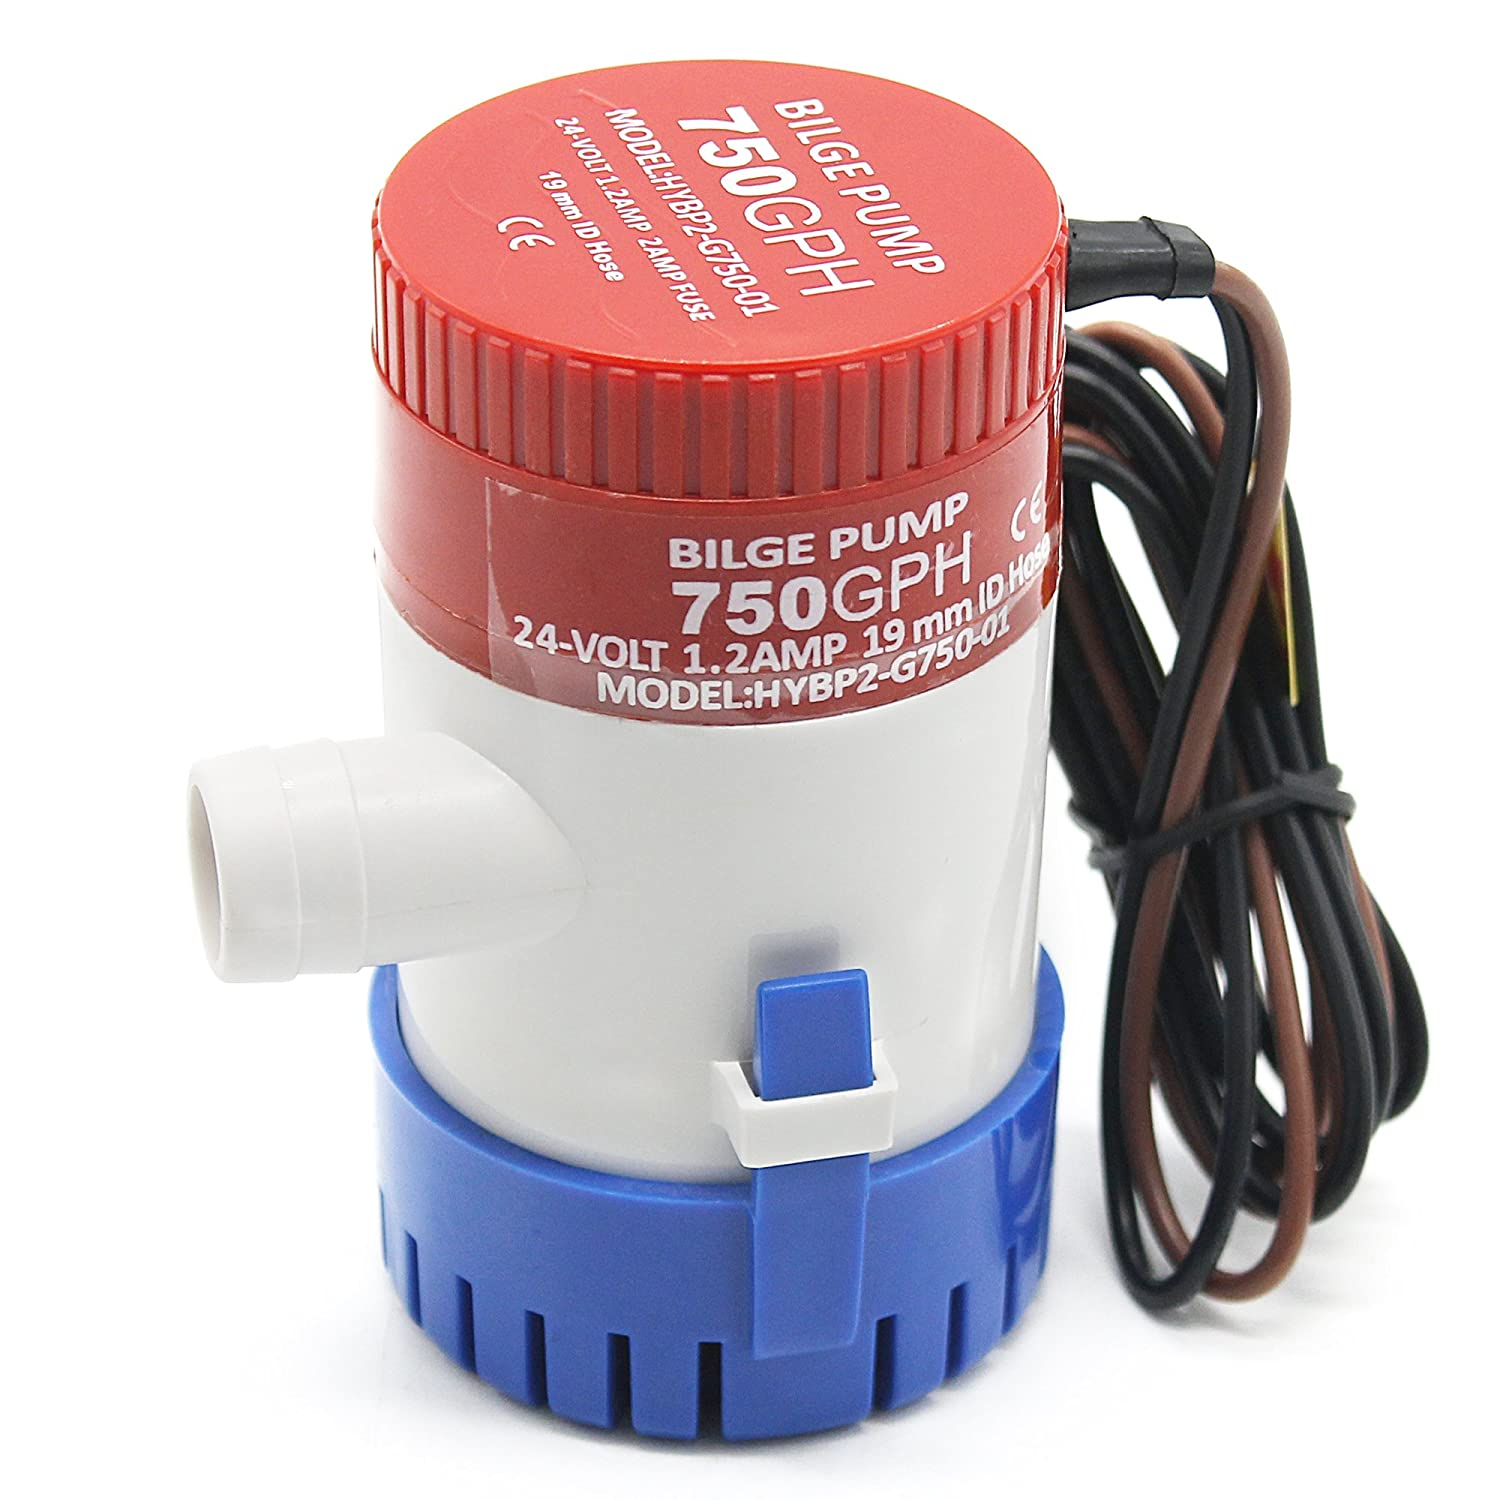 IZTOSS 12v 750gph Bilge Pump Submersible Fish Marine Boat Electric Bilge Water Pump